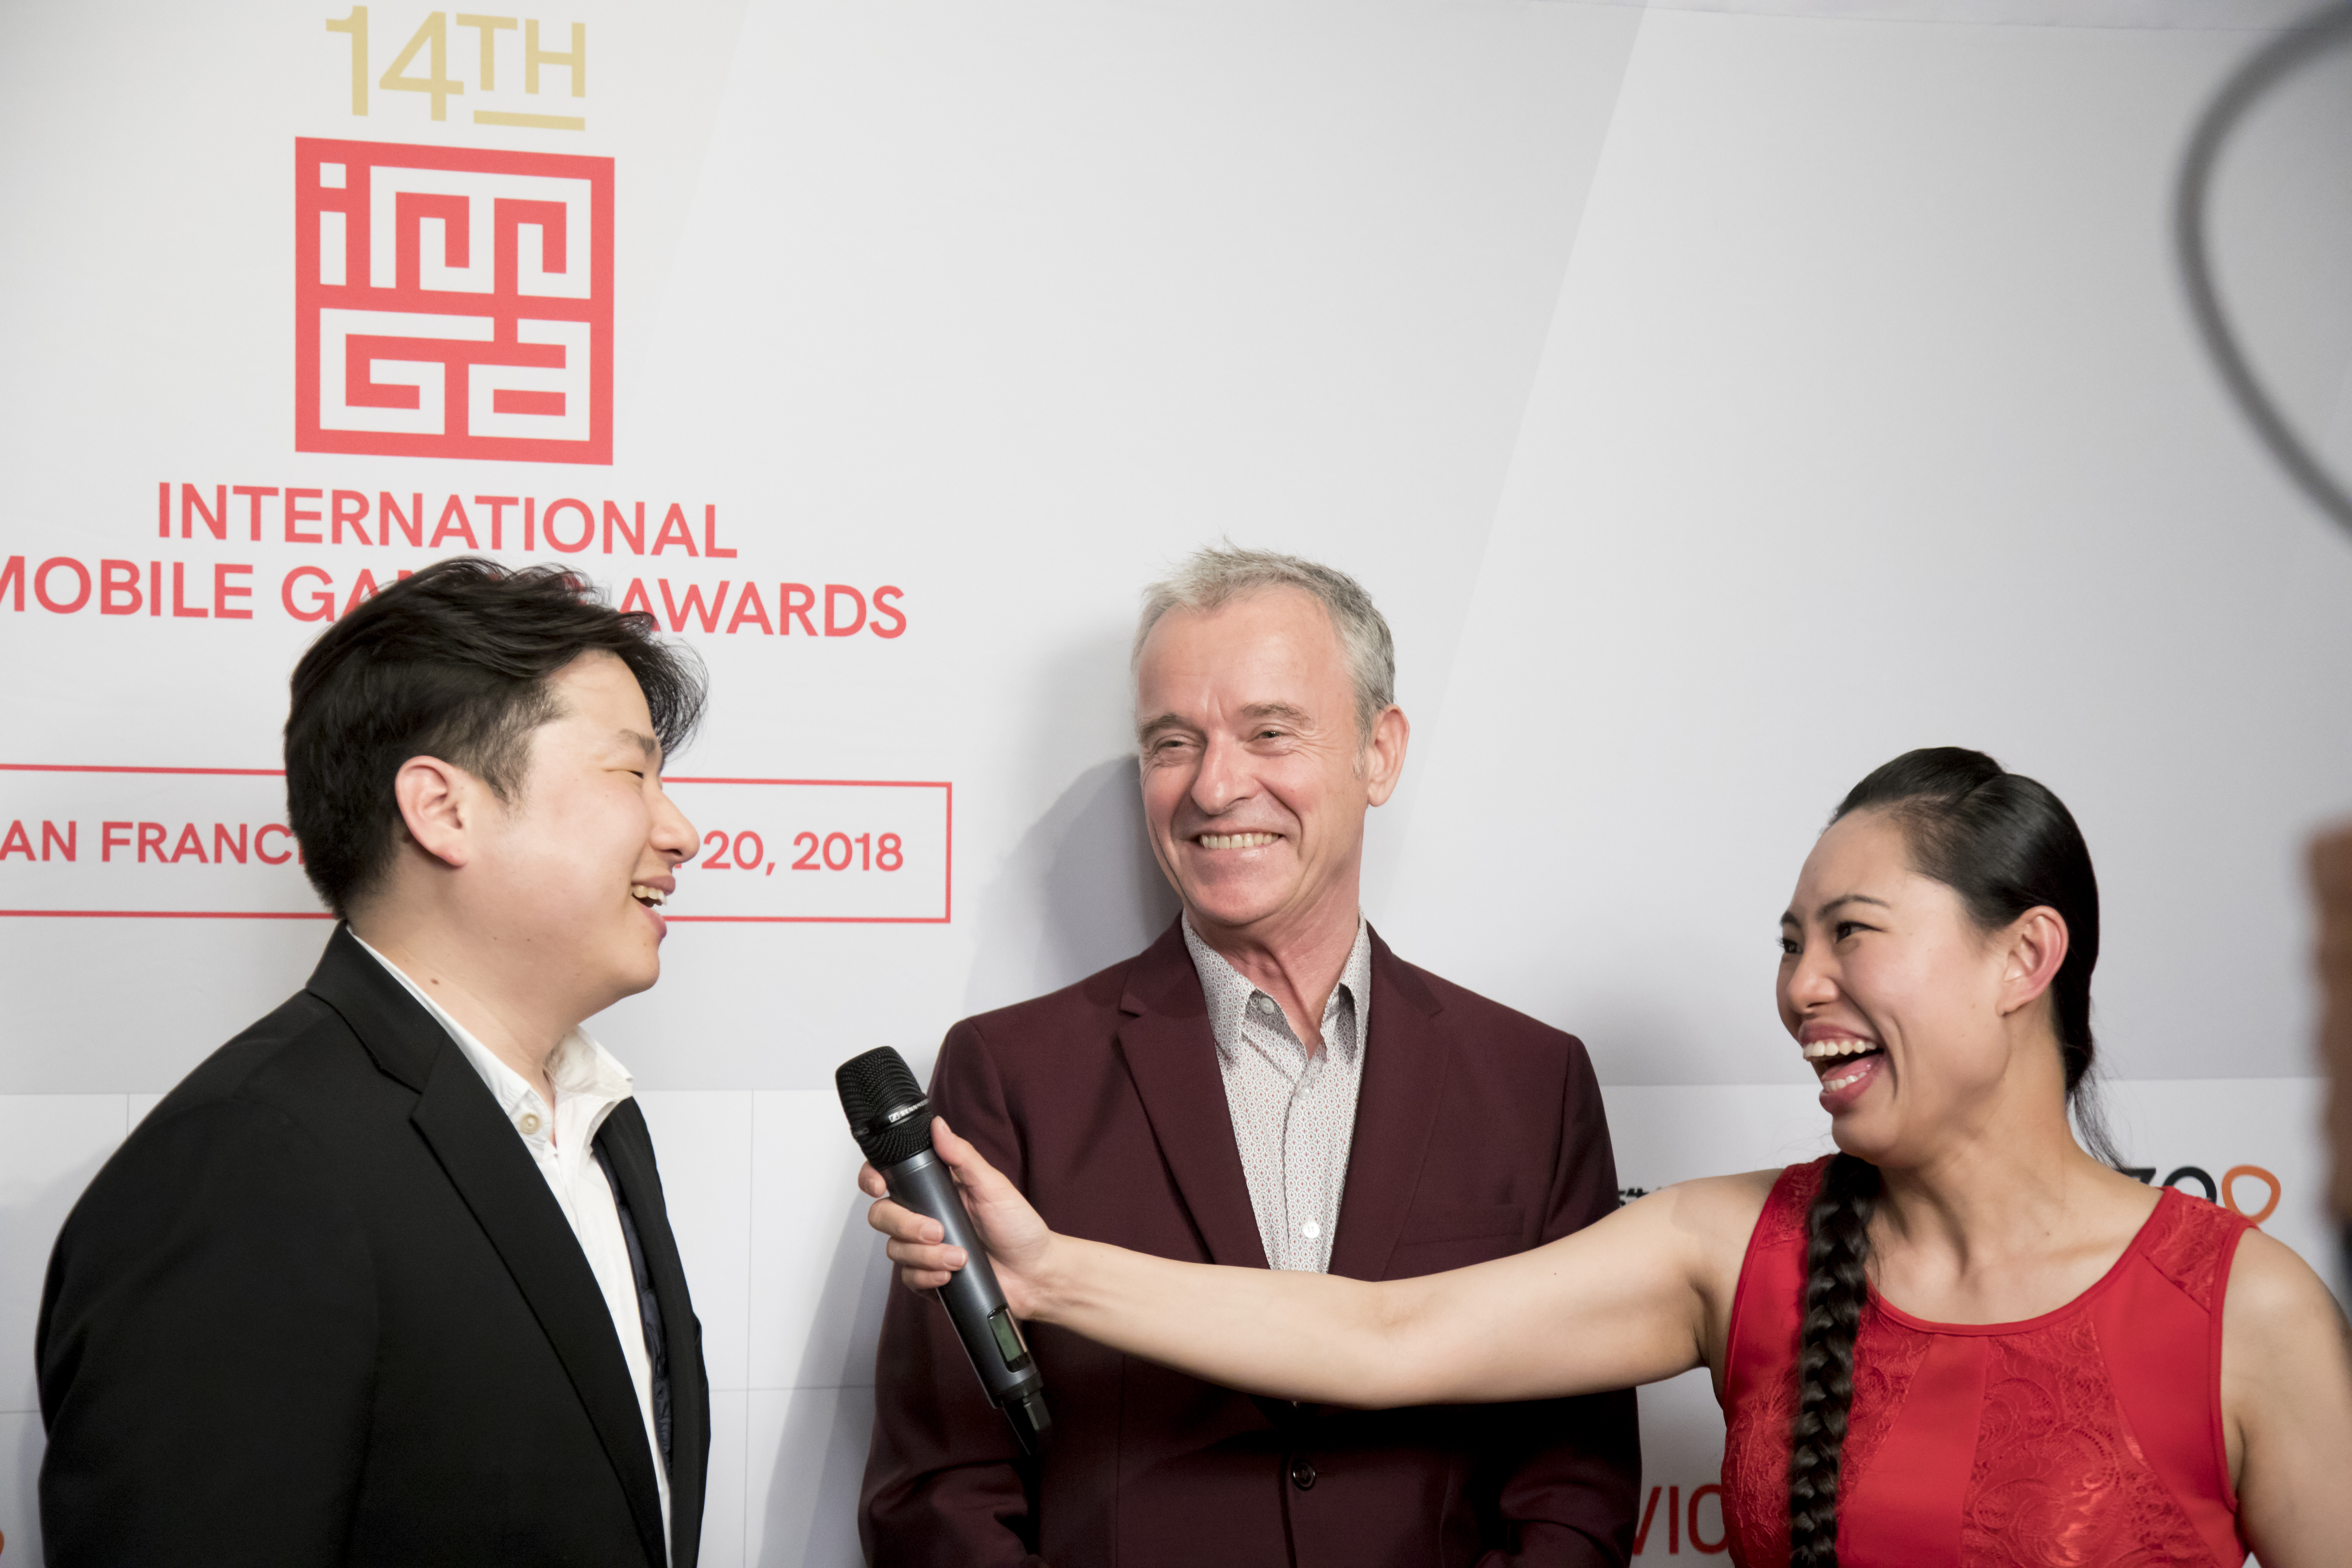 IMGA 14th ceremony – photobooth video